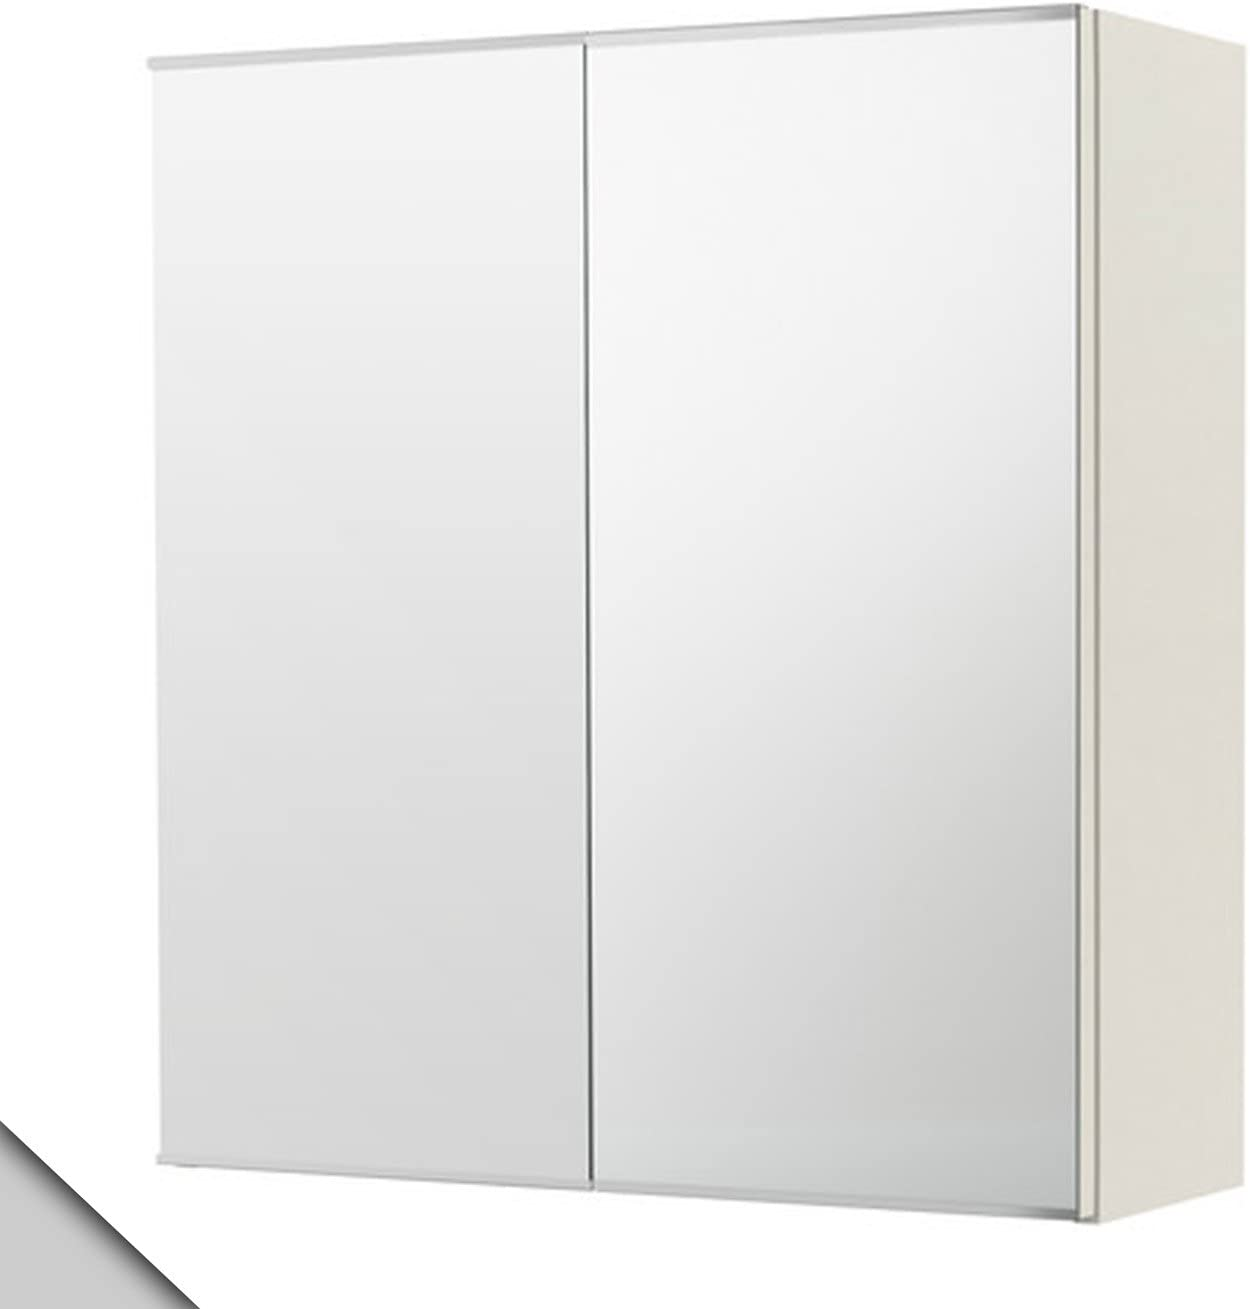 Ikea Lillangen Mirror Cabinet With 2 Doors White Amazon Co Uk Office Products